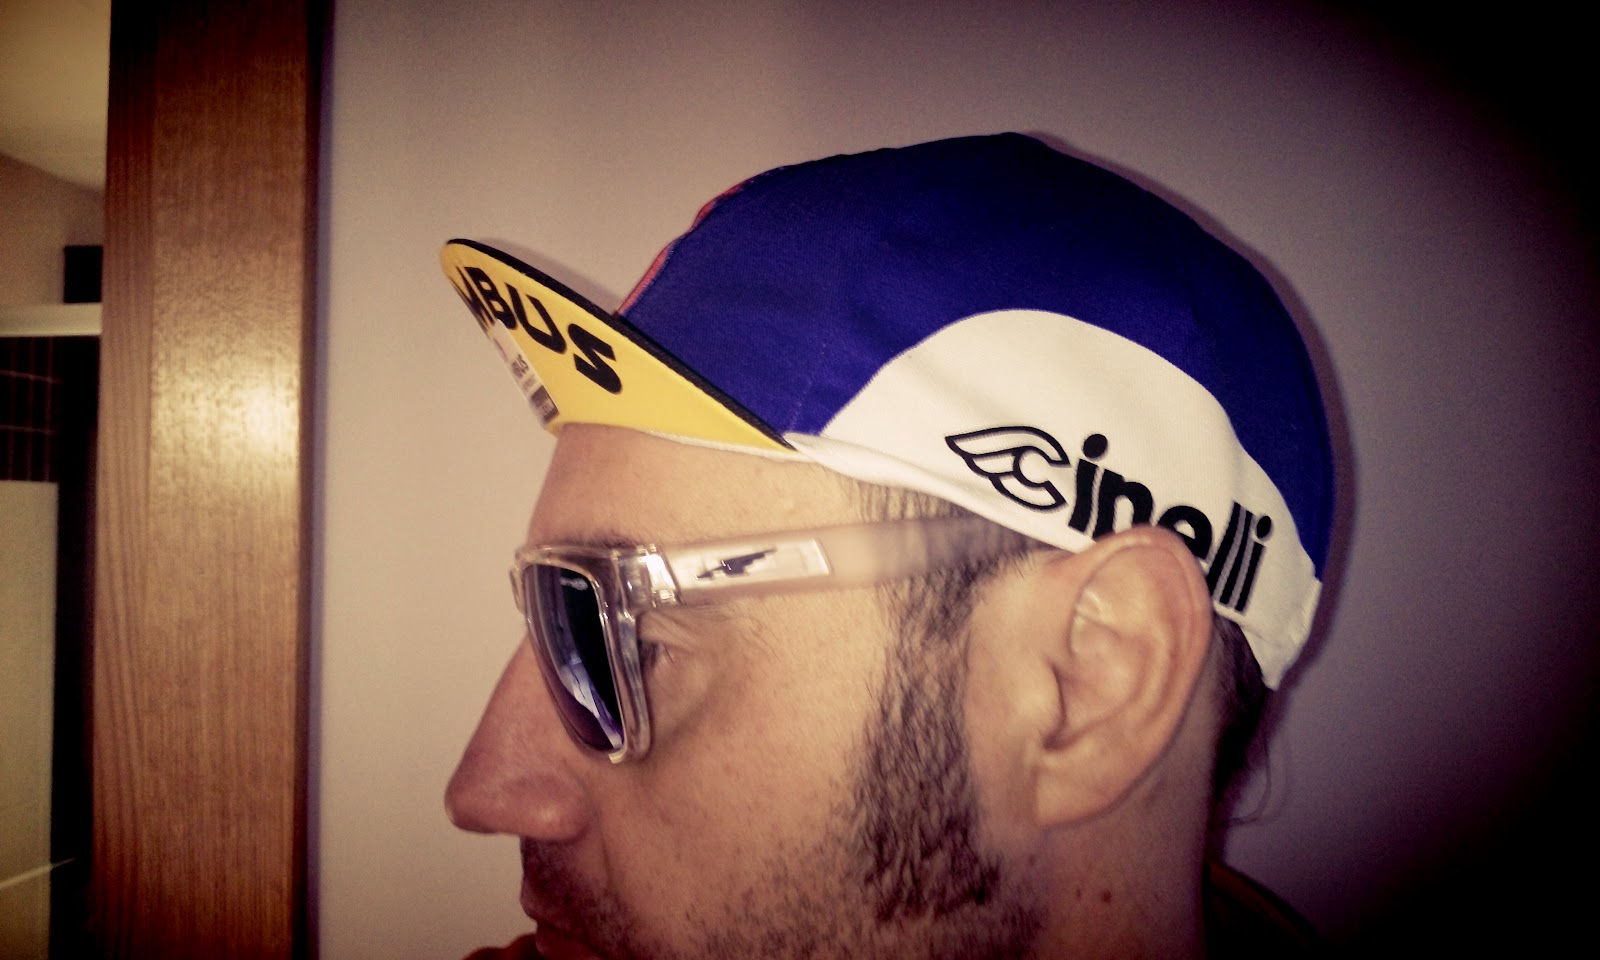 #ProductReview | Cinelli Basano '85 Cap from Wingedstore